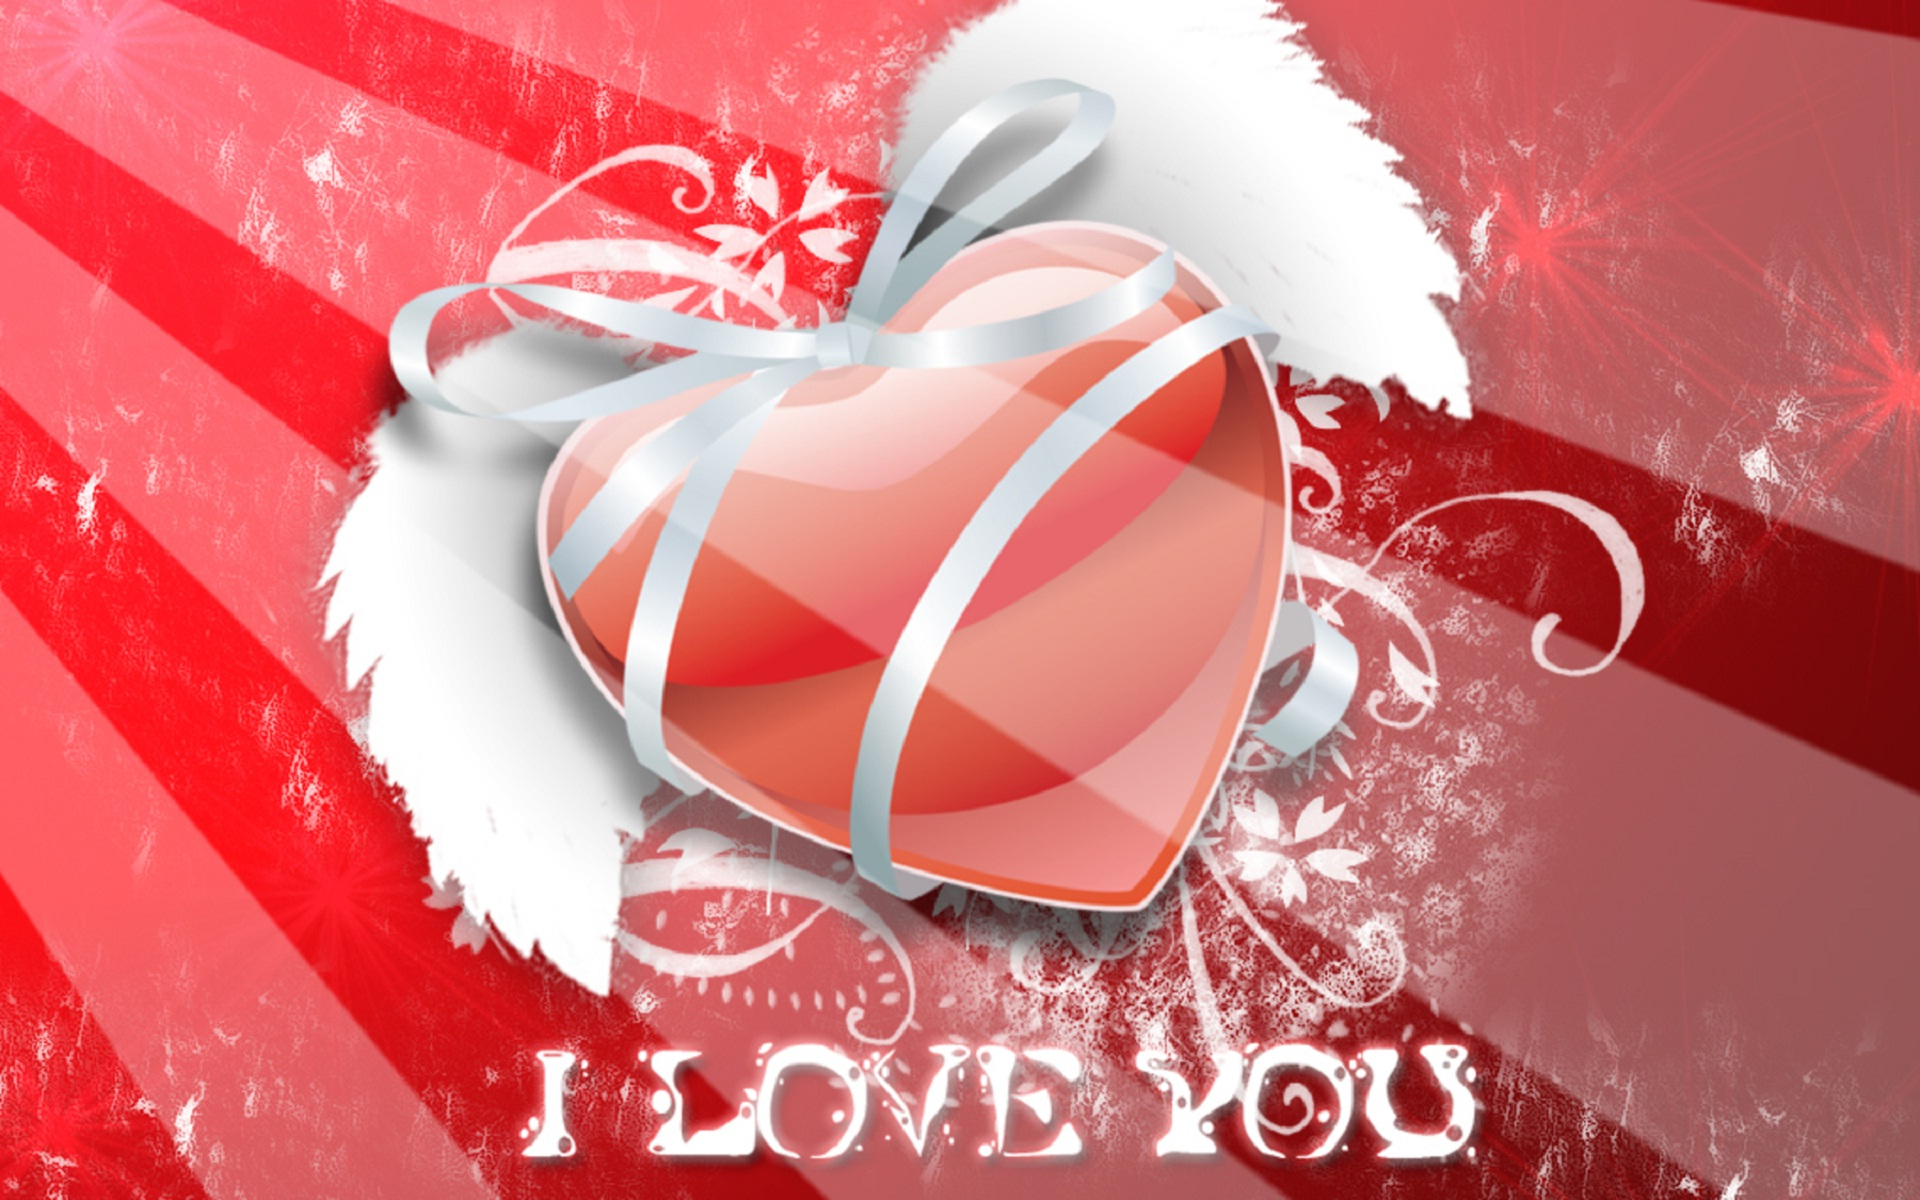 Dil Wallpapers Group Love You Heart 1608074 Hd Wallpaper